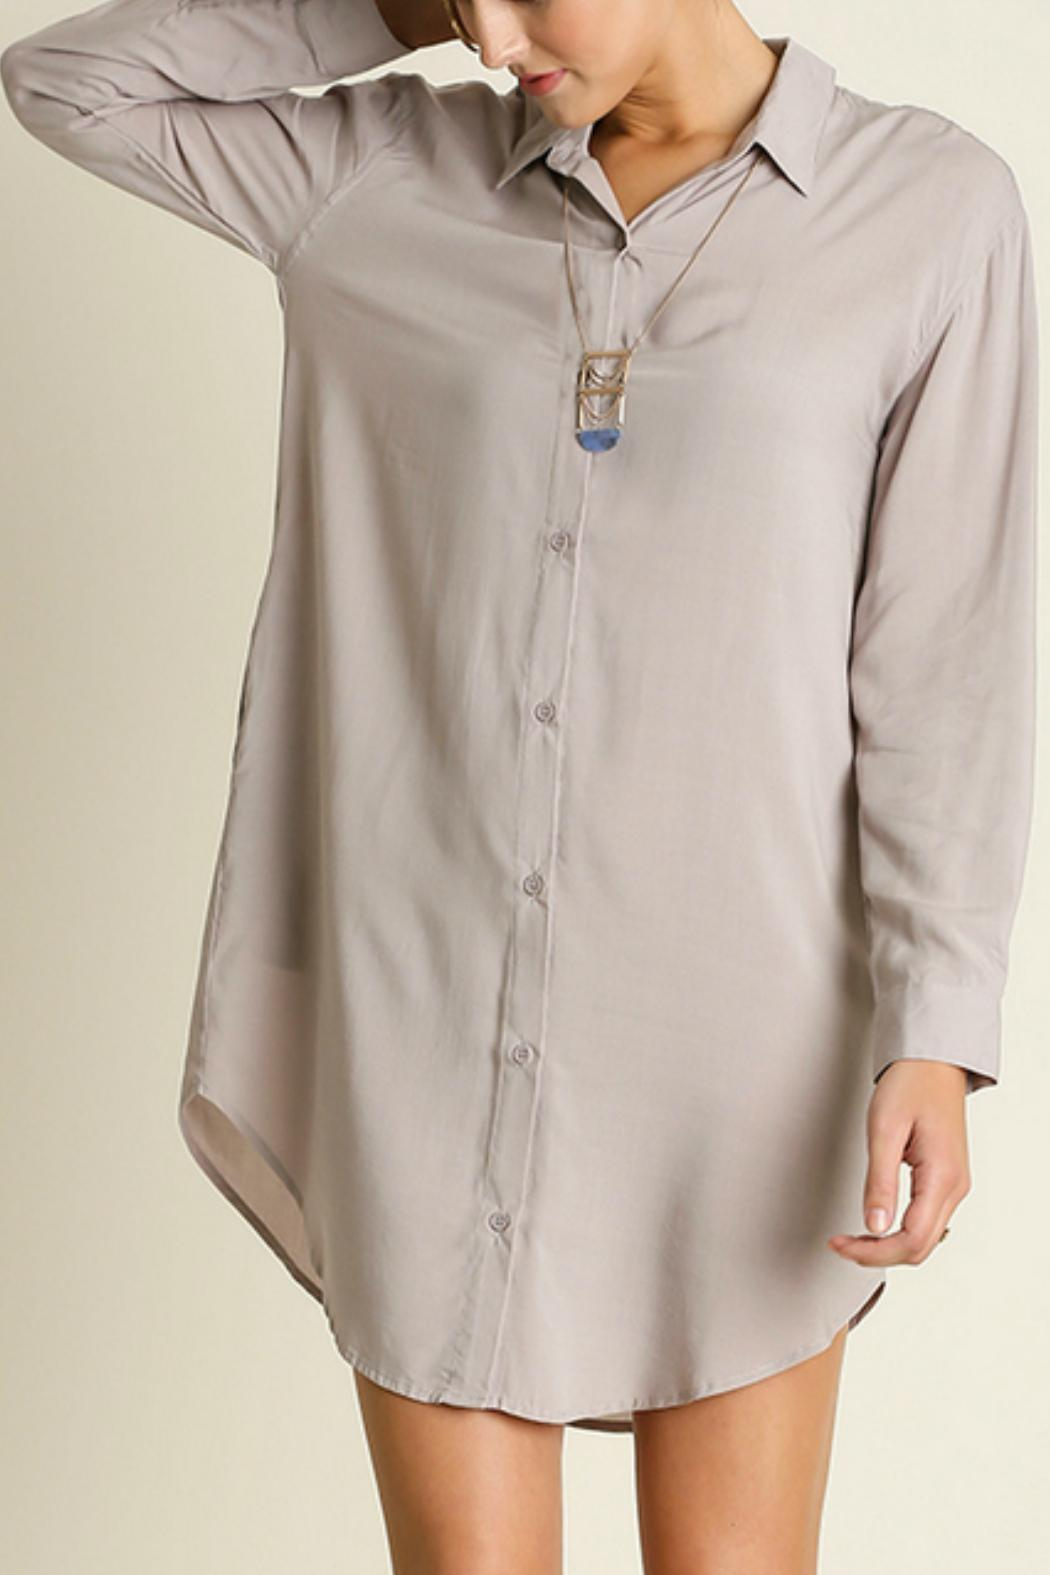 1c834900927cf Umgee USA Silky Shirt Dress from New Jersey by Locust Whimsy ...